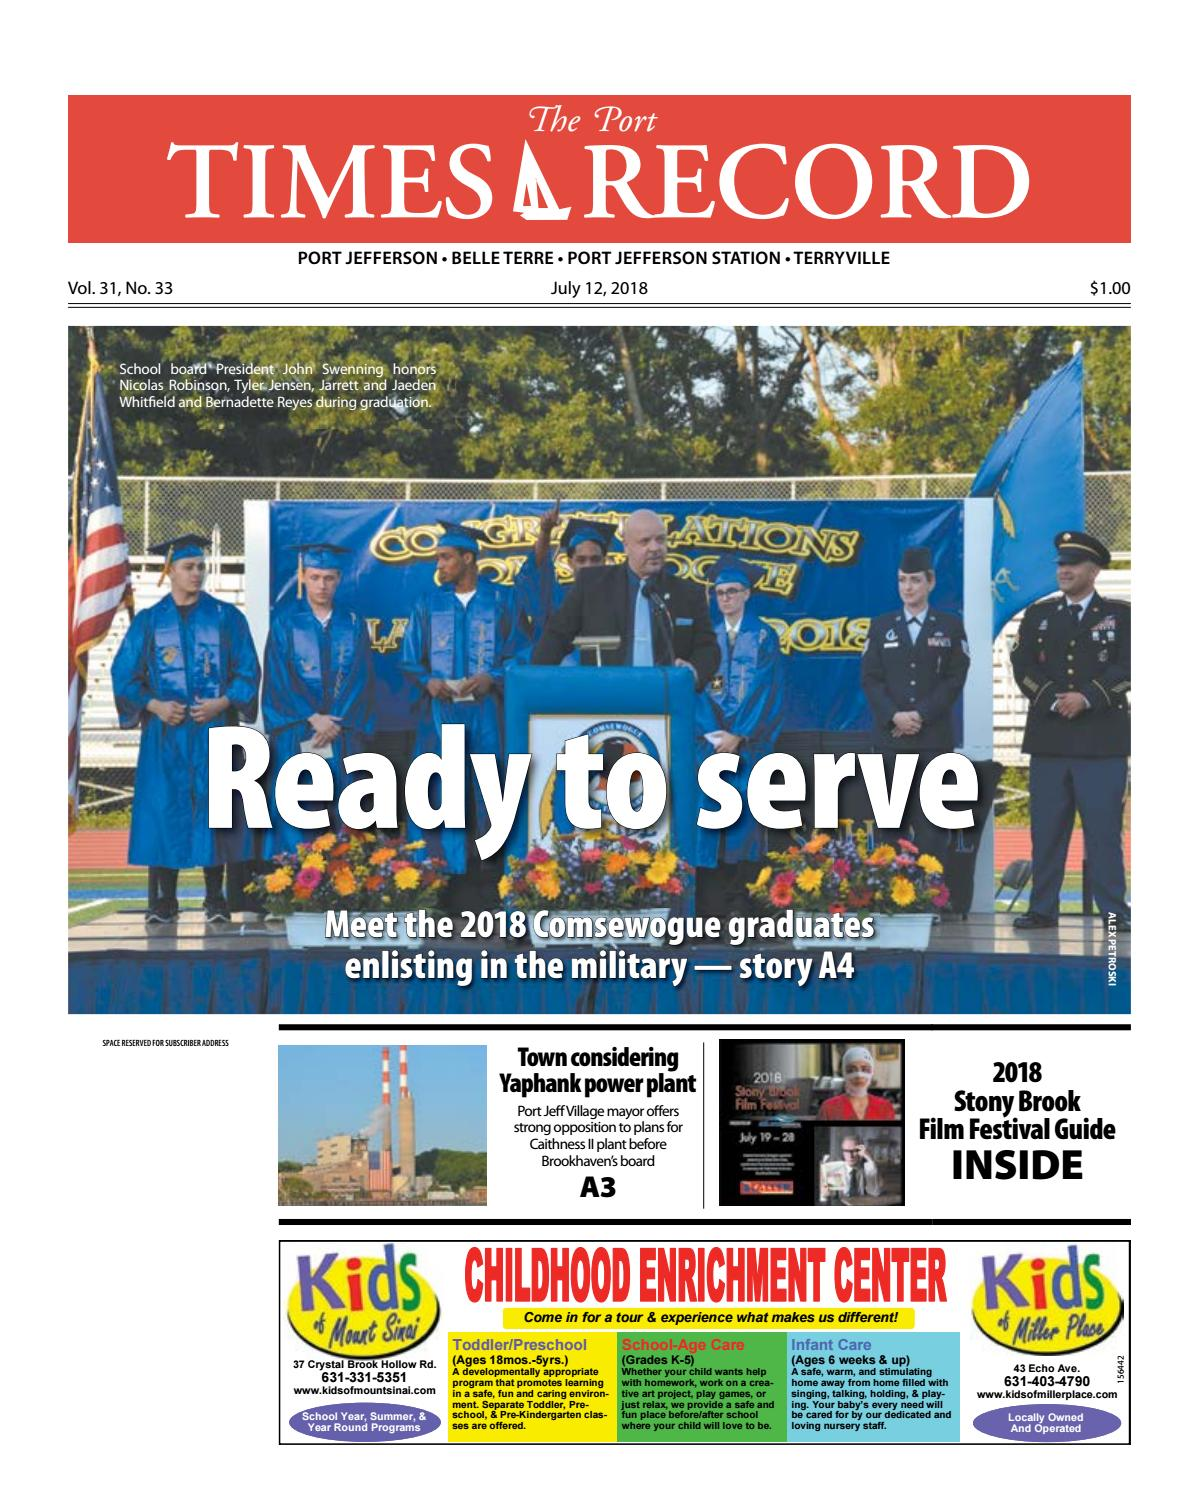 The Port Times Record - July 12. 2018 by TBR News Media - issuu